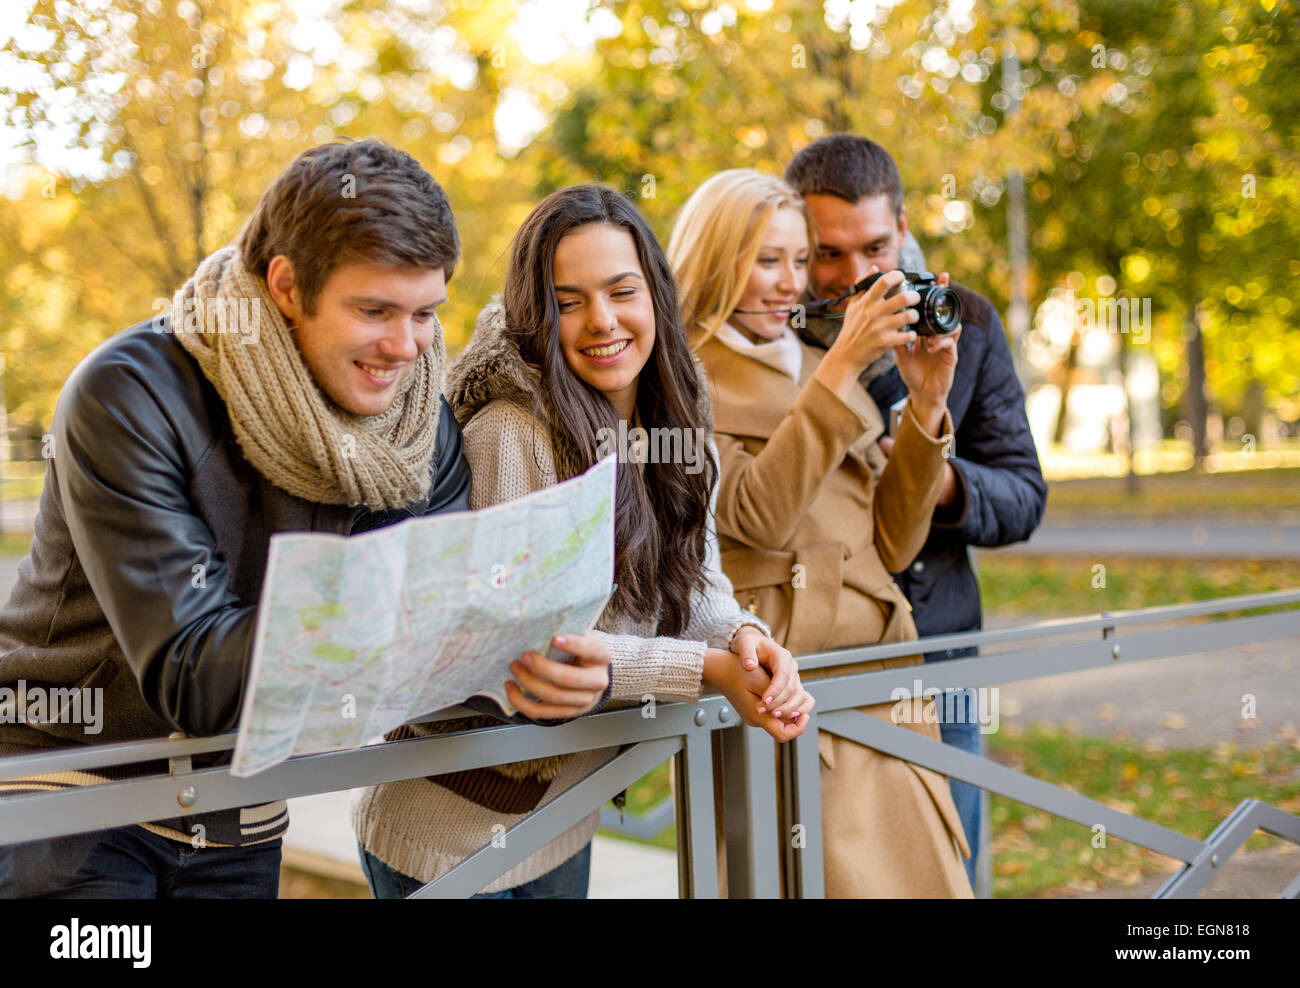 group of friends with map and camera outdoors - Stock Image